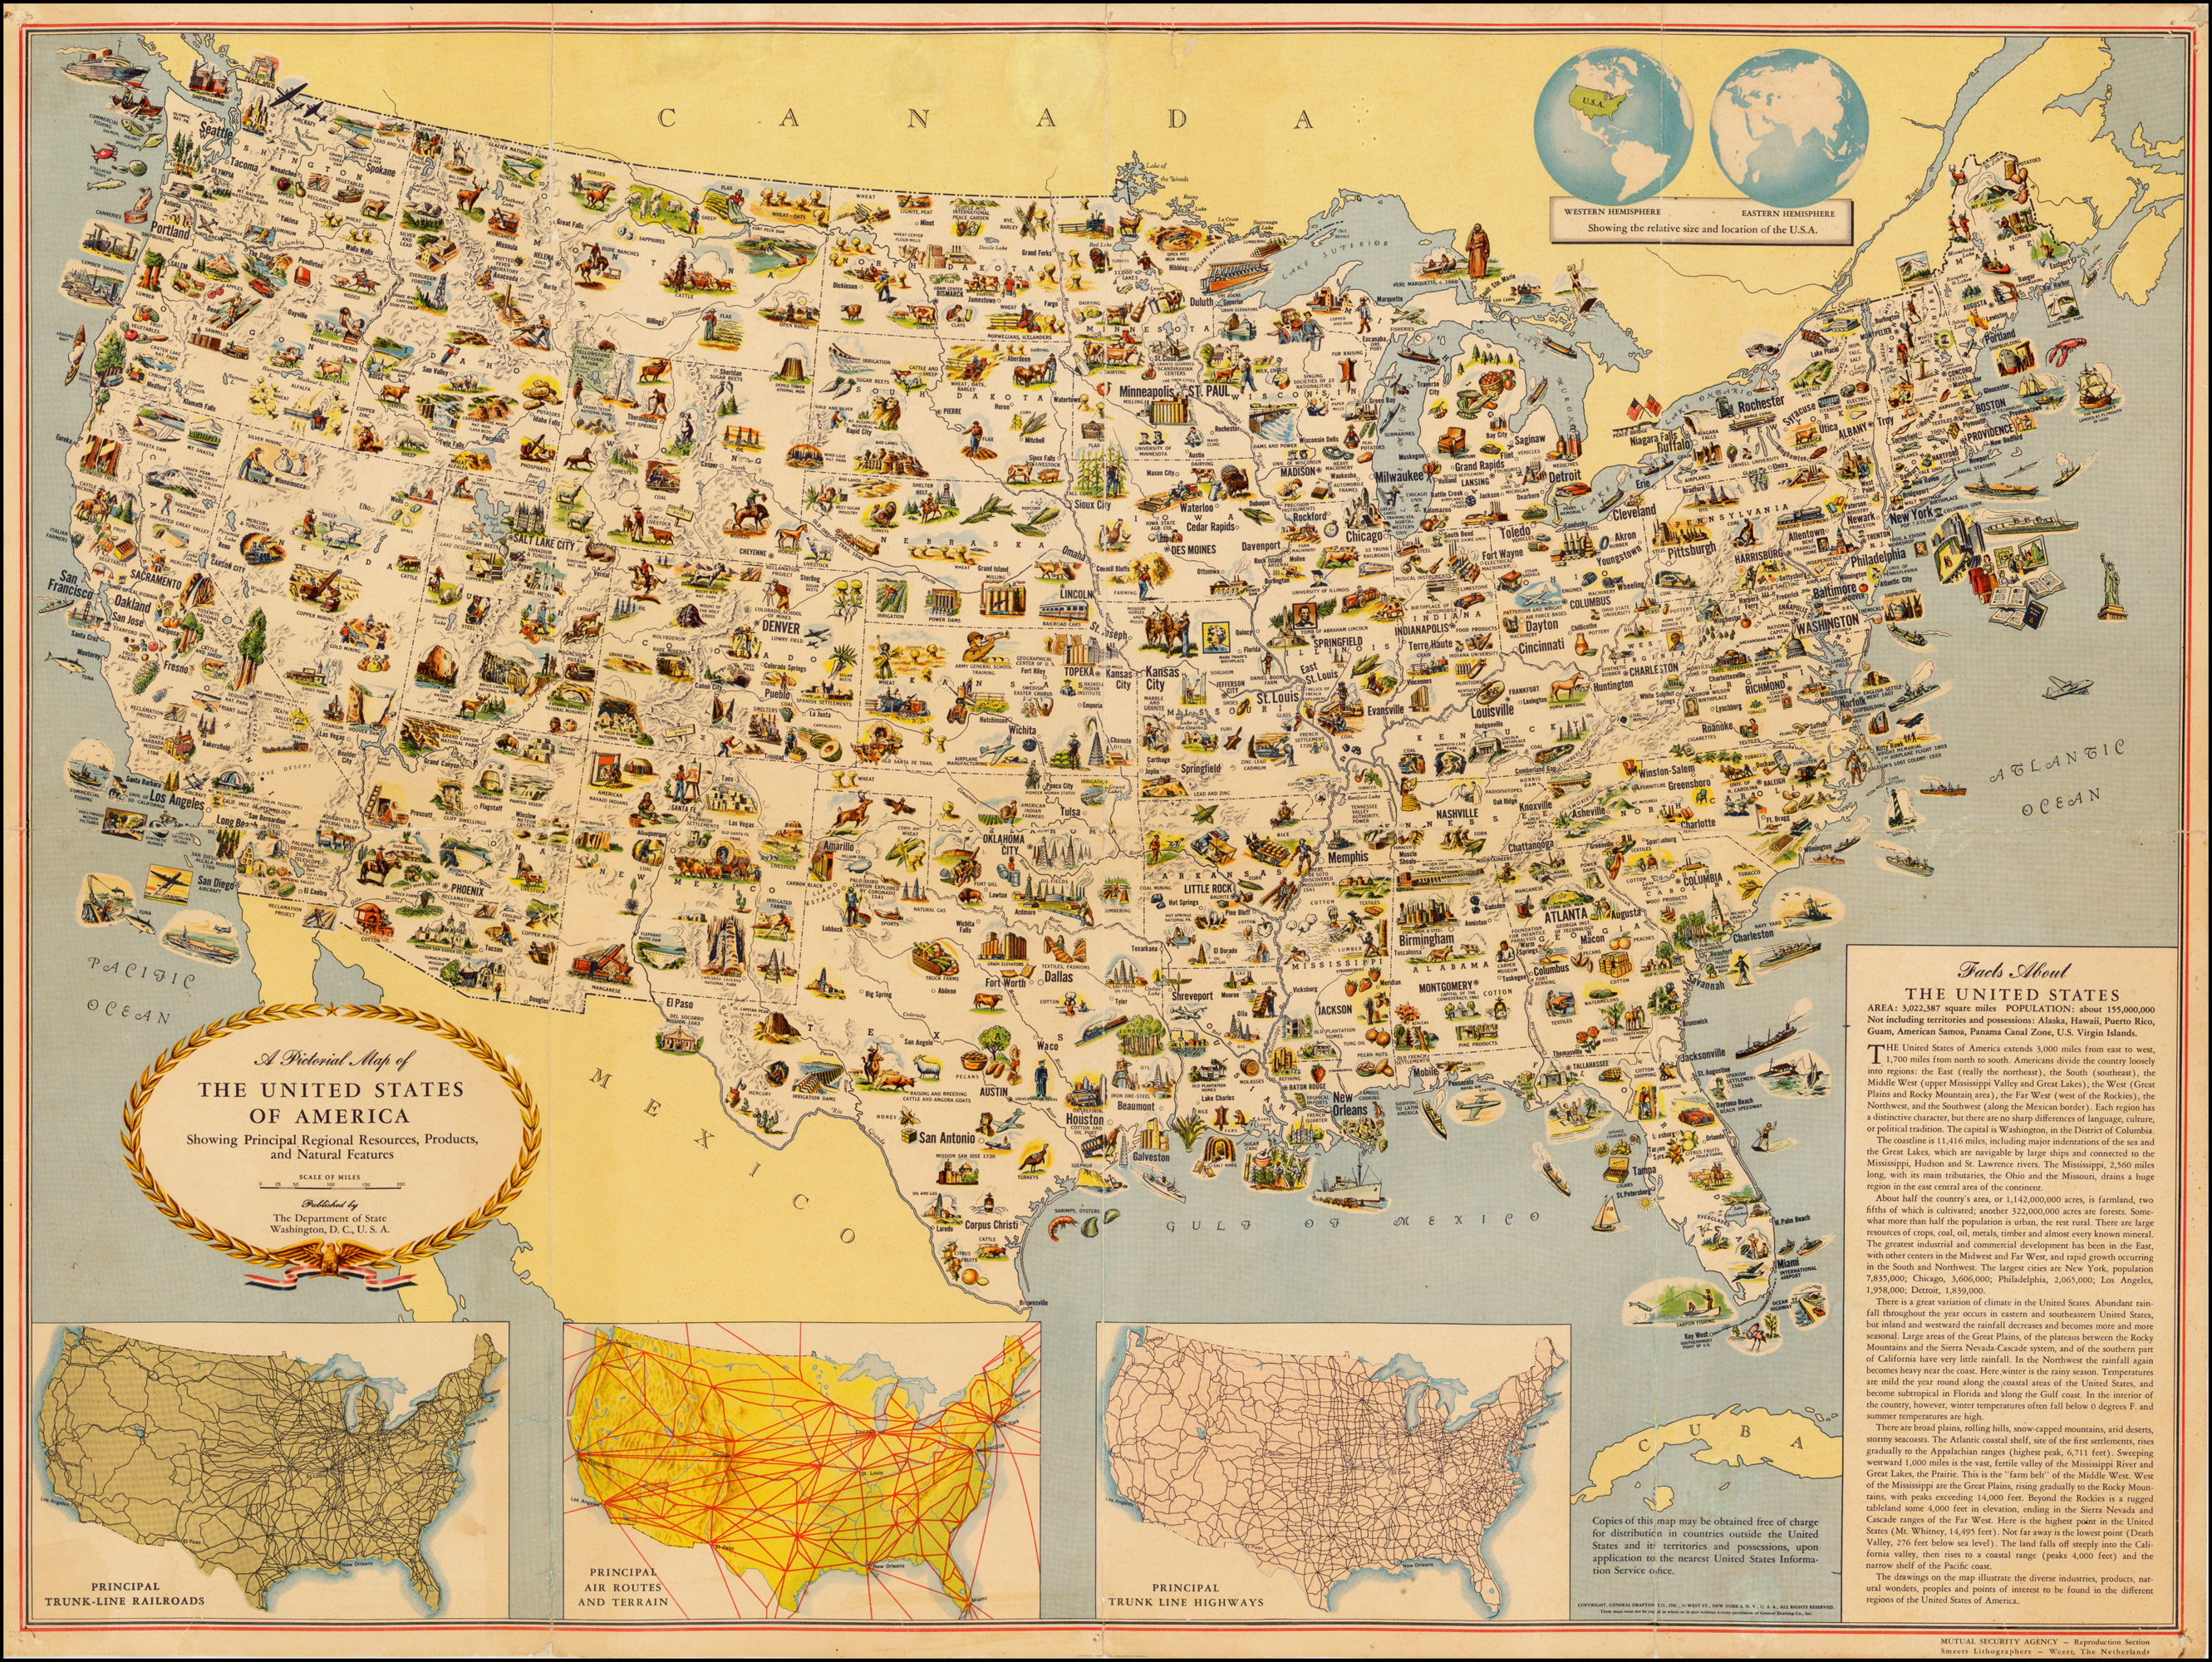 Cool Maps Are You There God Its Me Generation X - Map us oil fields